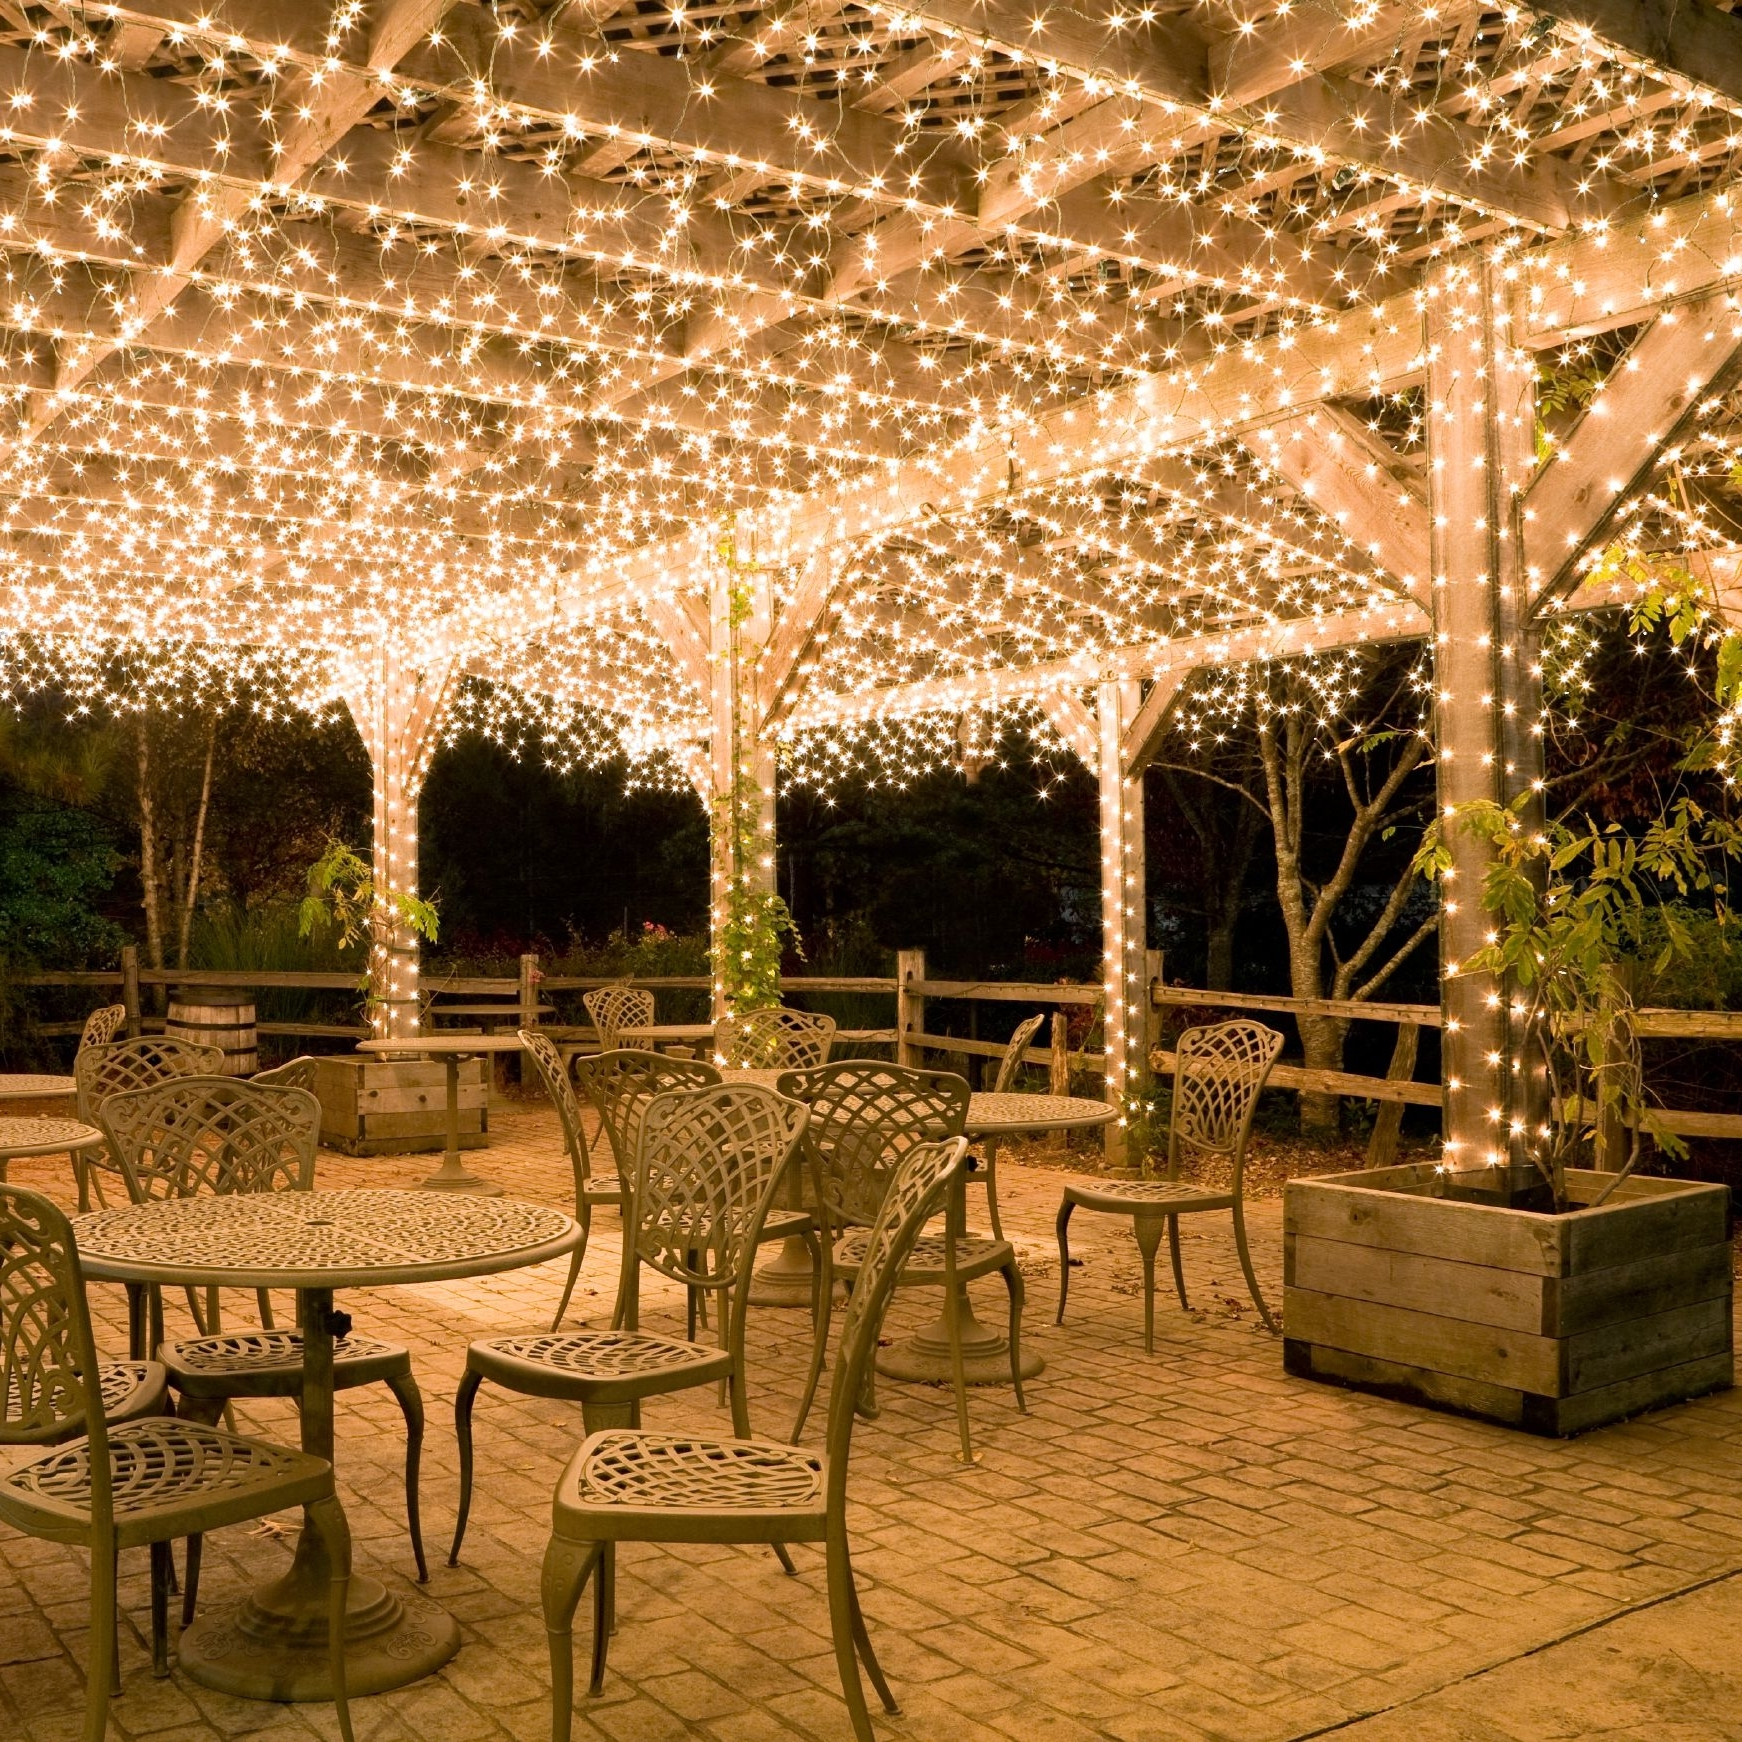 Most Recent Hang White Icicle Lights To Create Magical Outdoor Lighting (View 9 of 20)